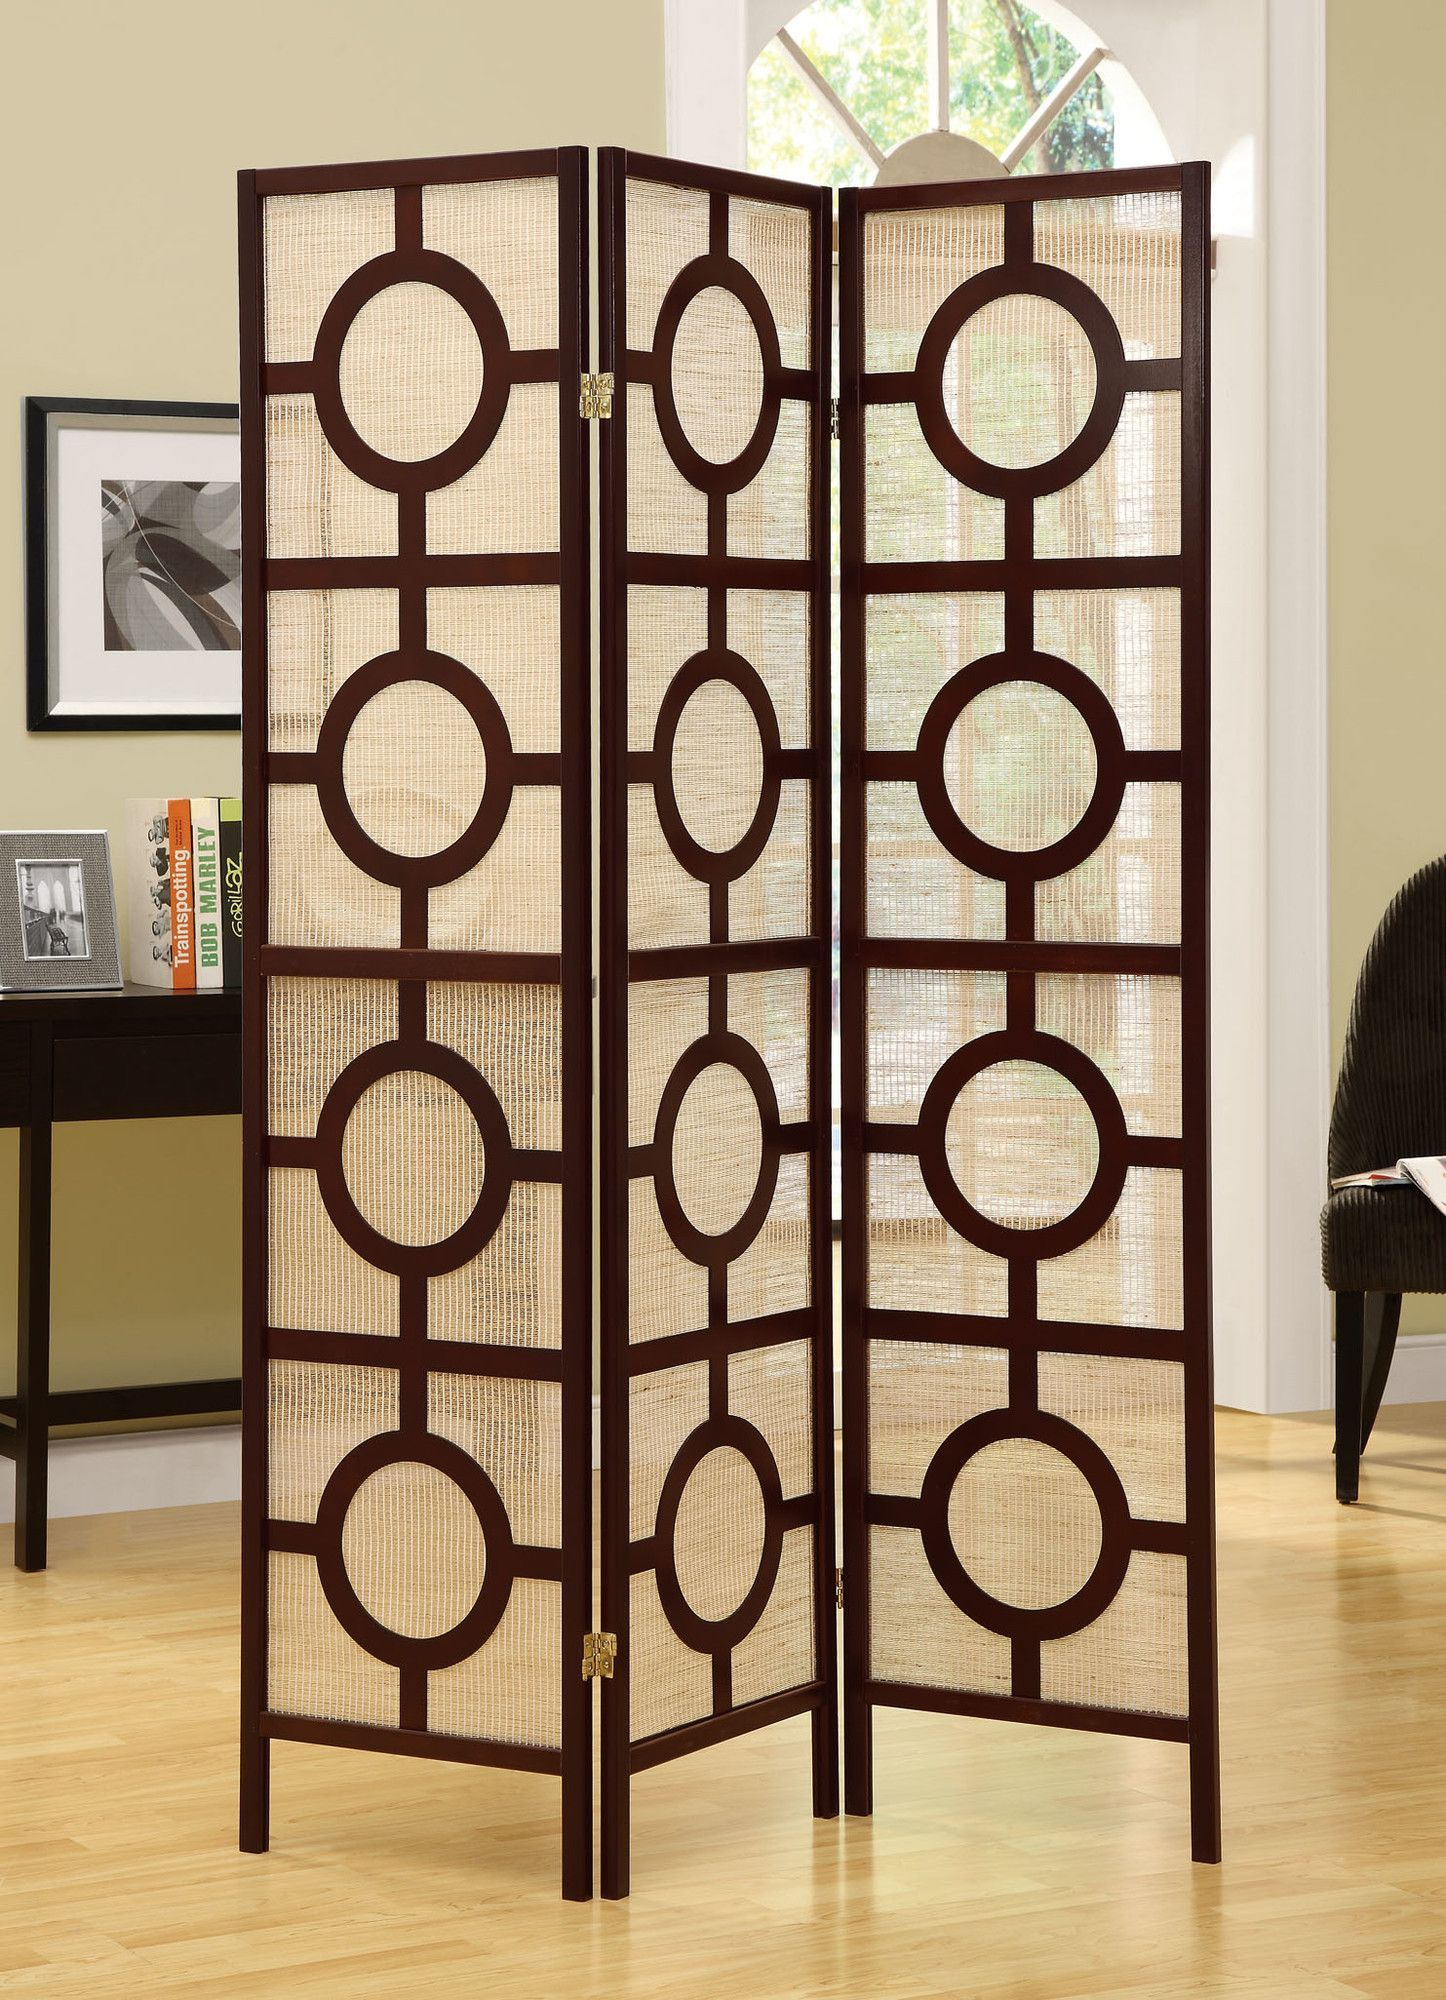 Affordable Nice Small Room Dividers Simple Interior 10 Simple Ideas Can Change Your Life: Room Divider Cheap Pvc Pipes room  divider headboard small spaces.Mid Century Room Divider Antiques small room  divider ...